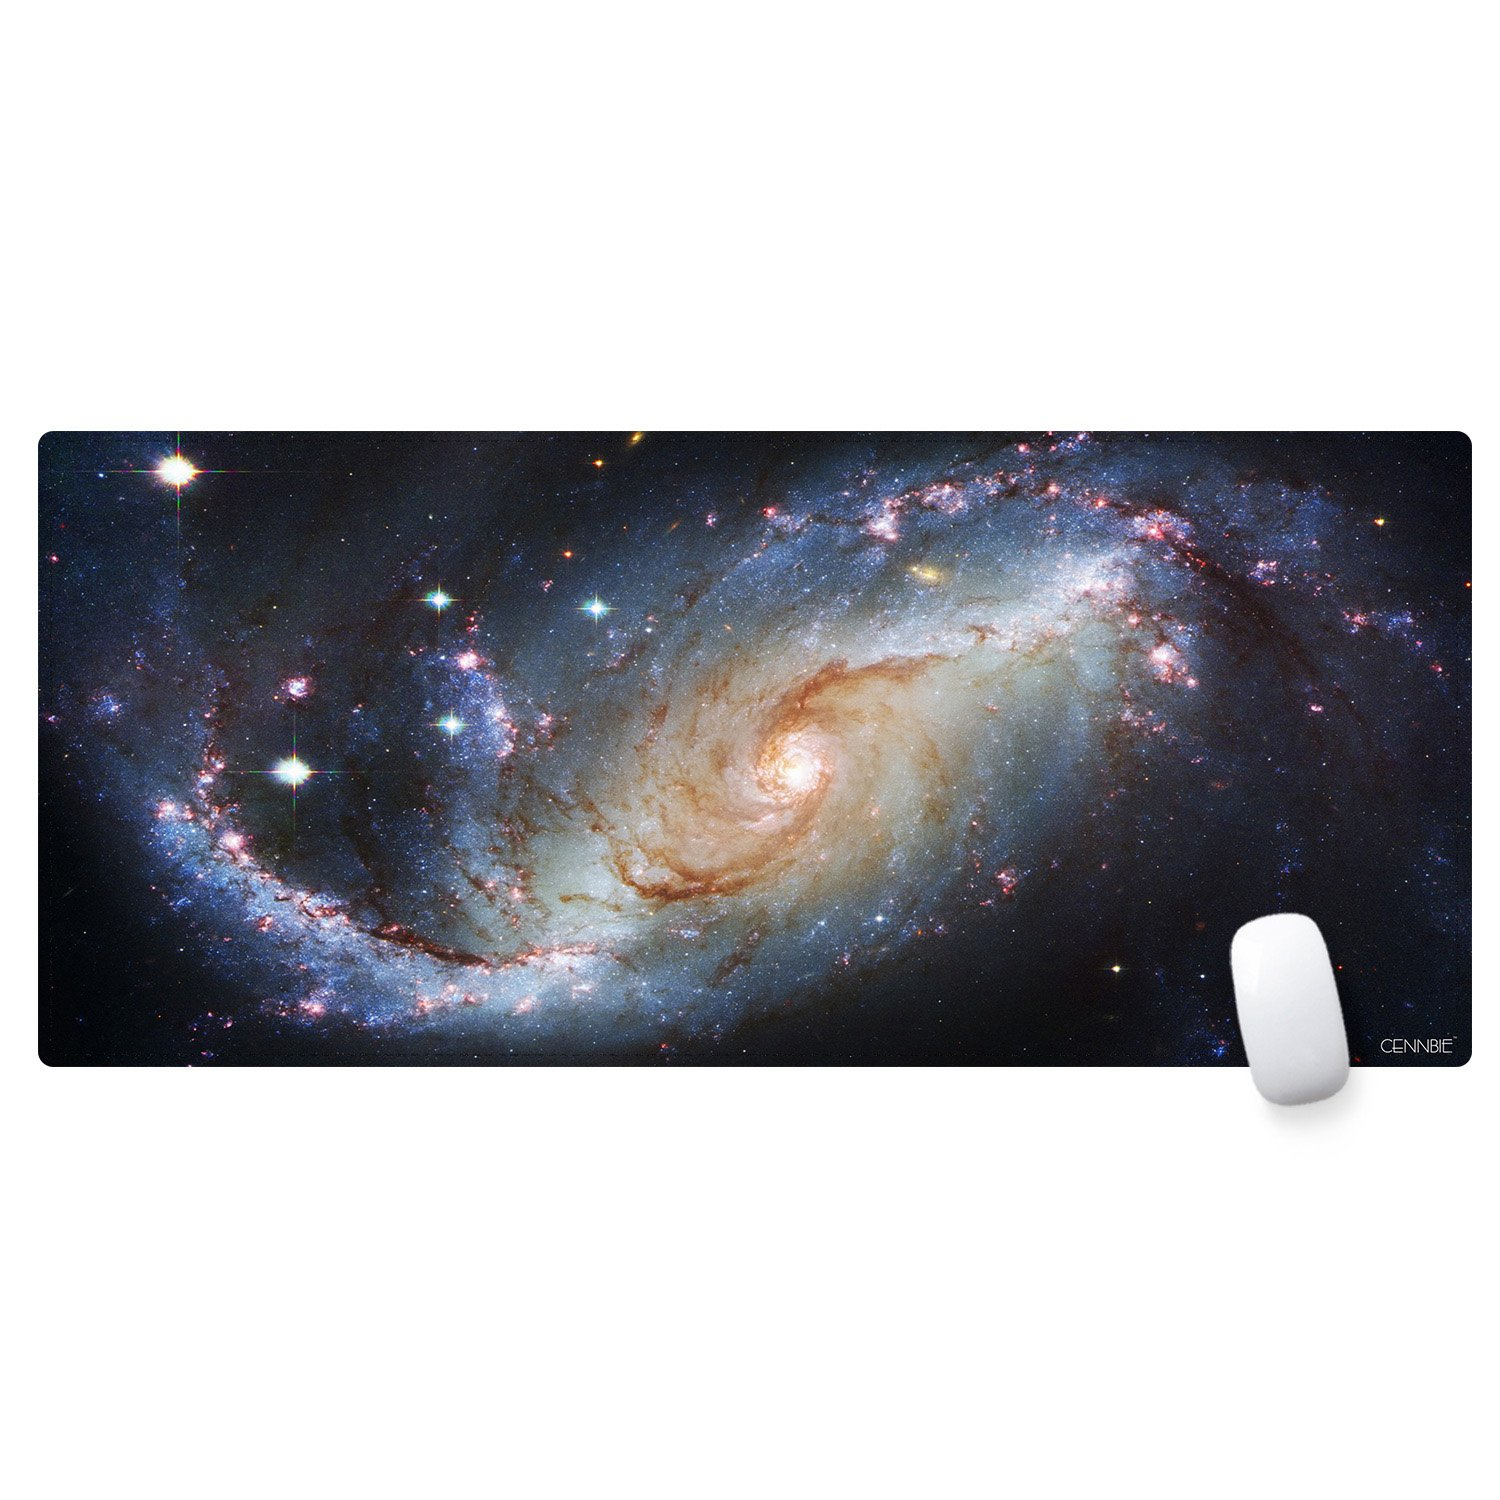 CENNBIE Extended XXL Gaming Mouse Pad 35.4'x15.7'x0.08' Non-Slip Rubber Base &Smooth Surface (Worldmap) MP9040-118